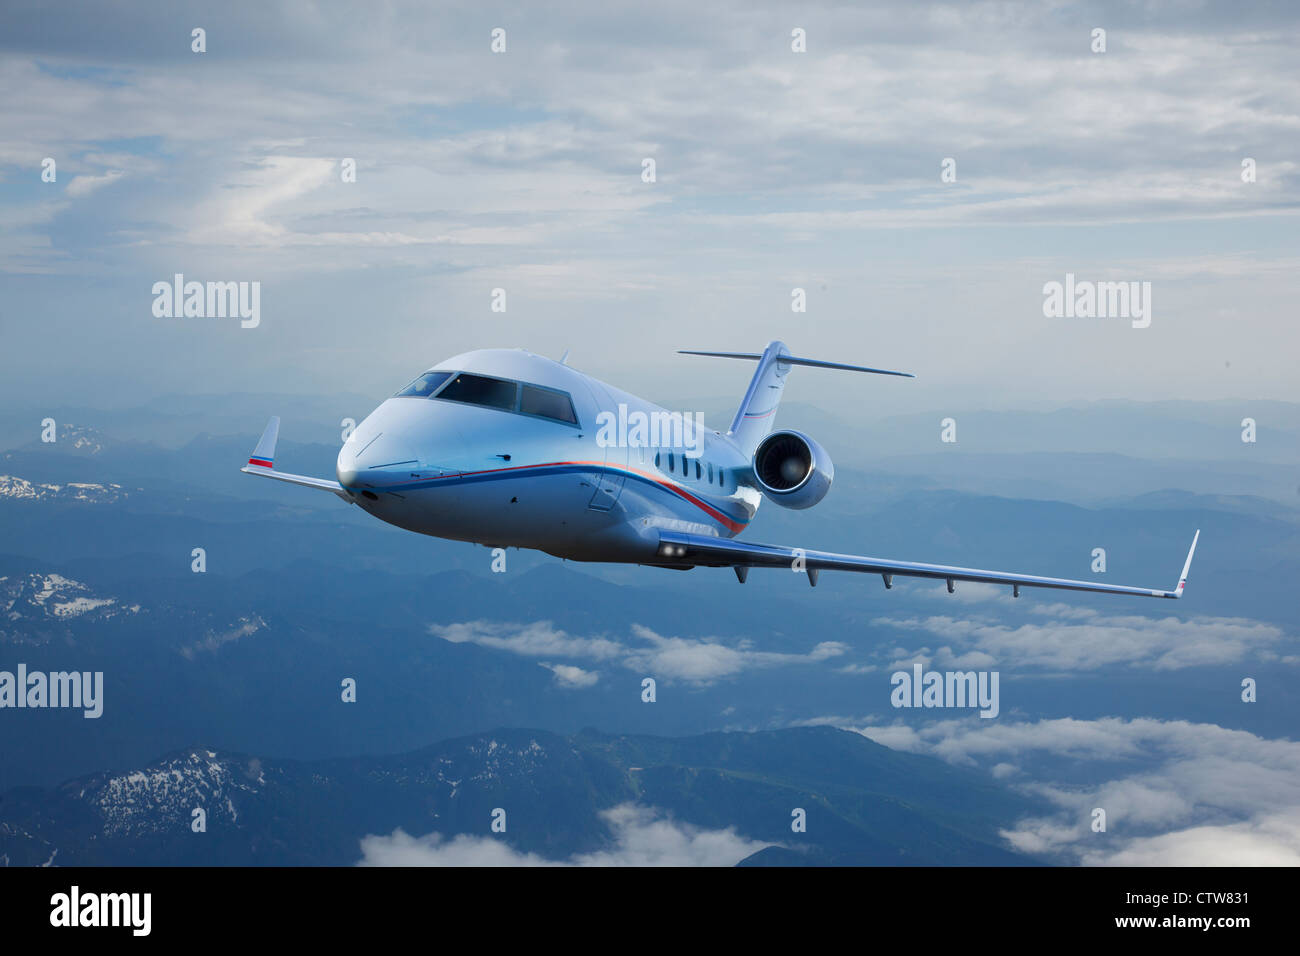 A Bombardier Challenger 601 clears hazy mountains. - Stock Image